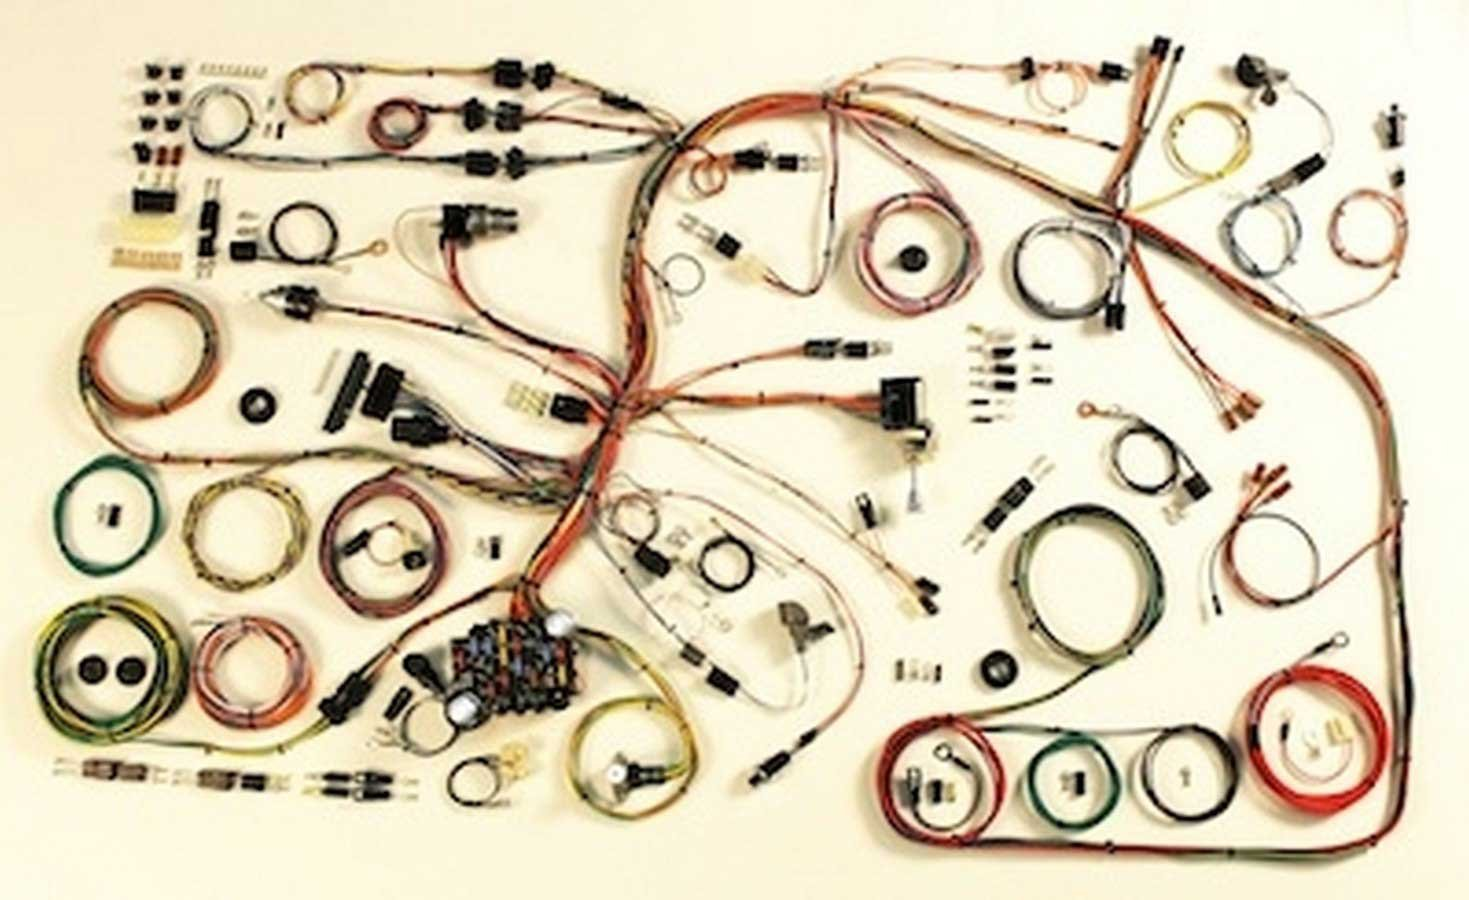 American Autowire 510368 Wiring Kit by American Autowire